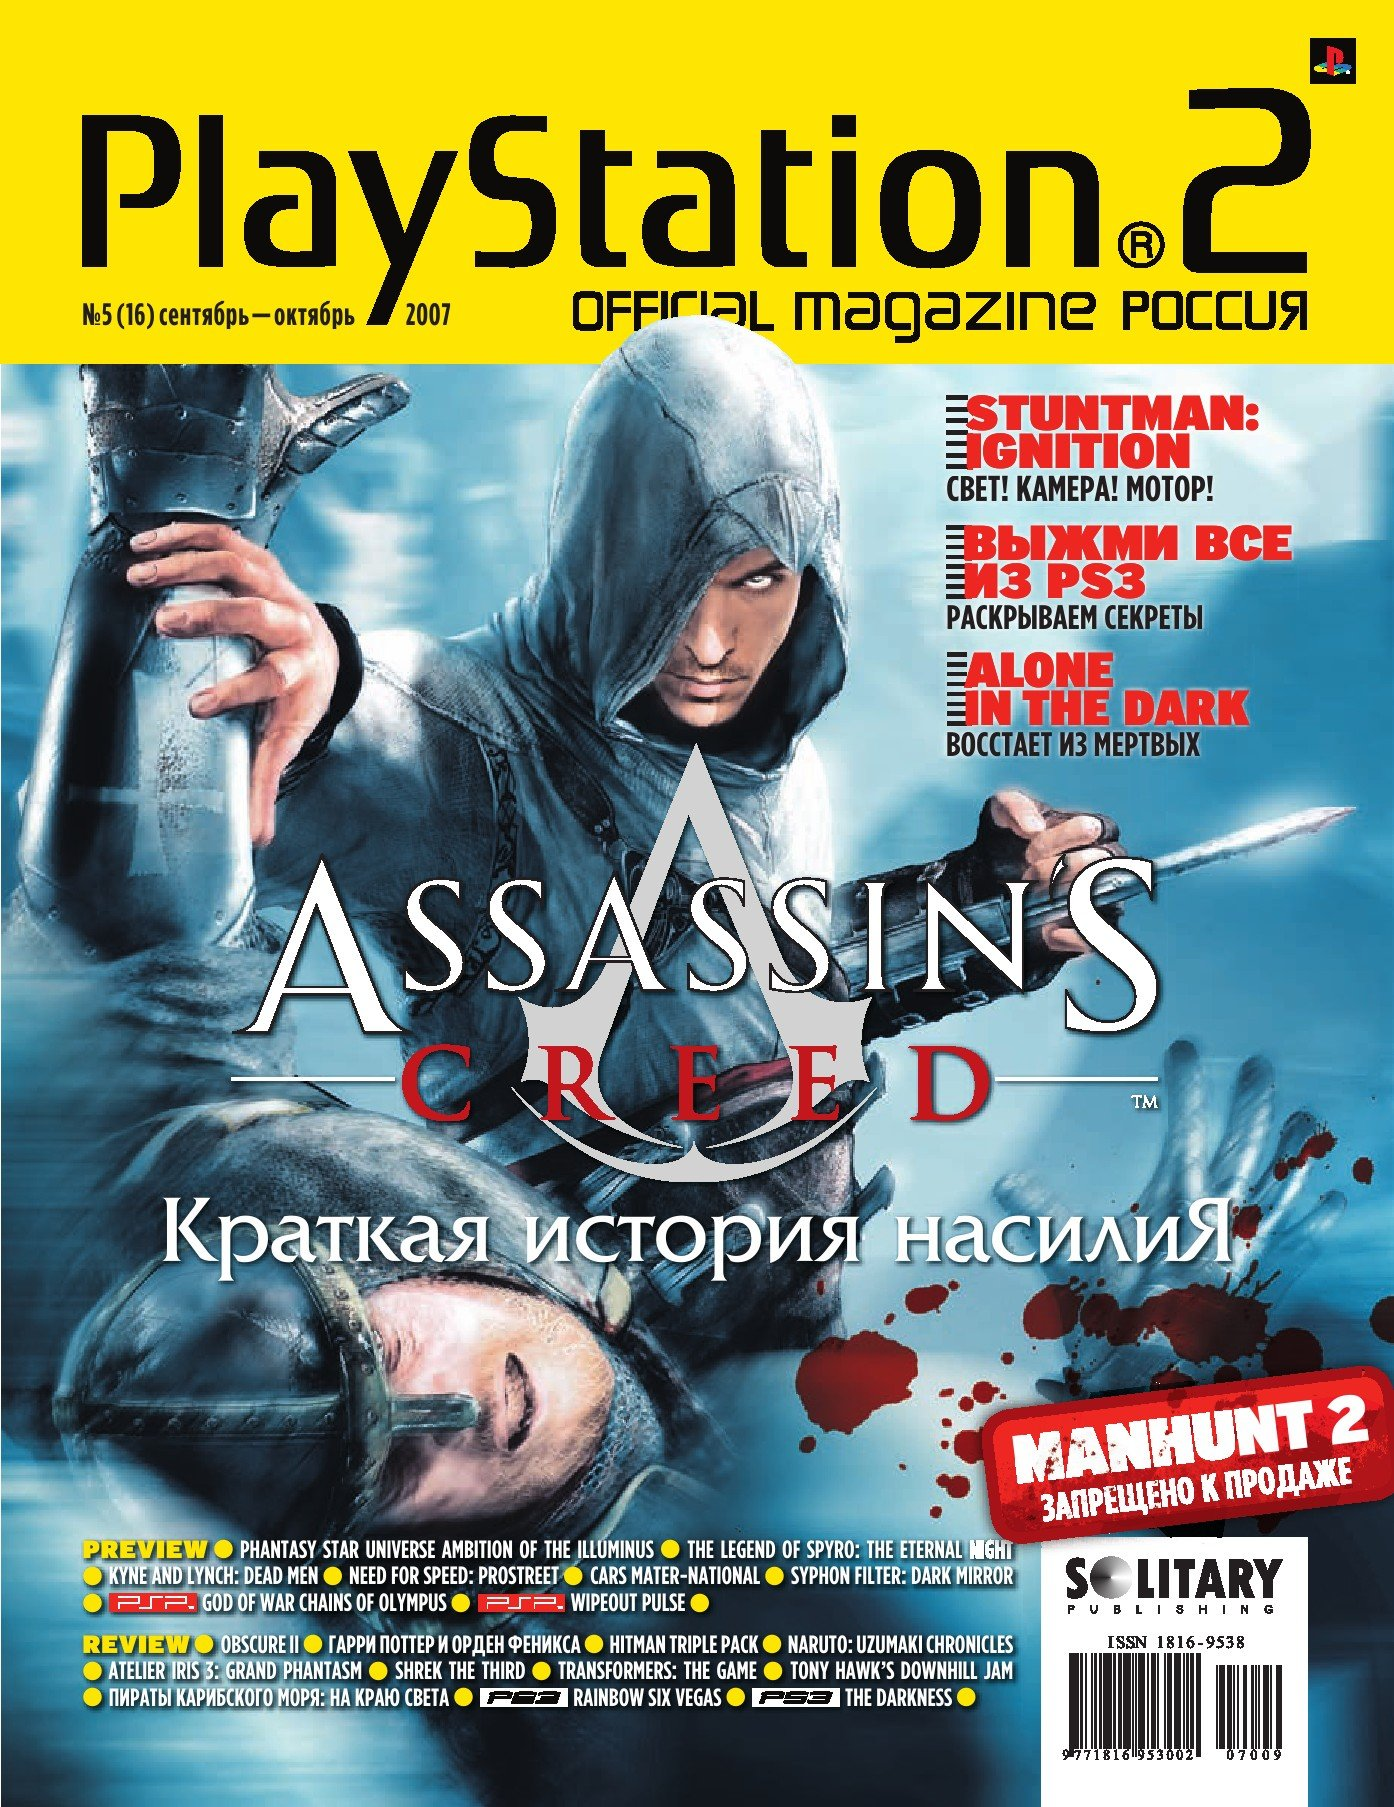 Playstation 2 Official Magazine (Russia) Issue 16 - Sept./Oct. '07